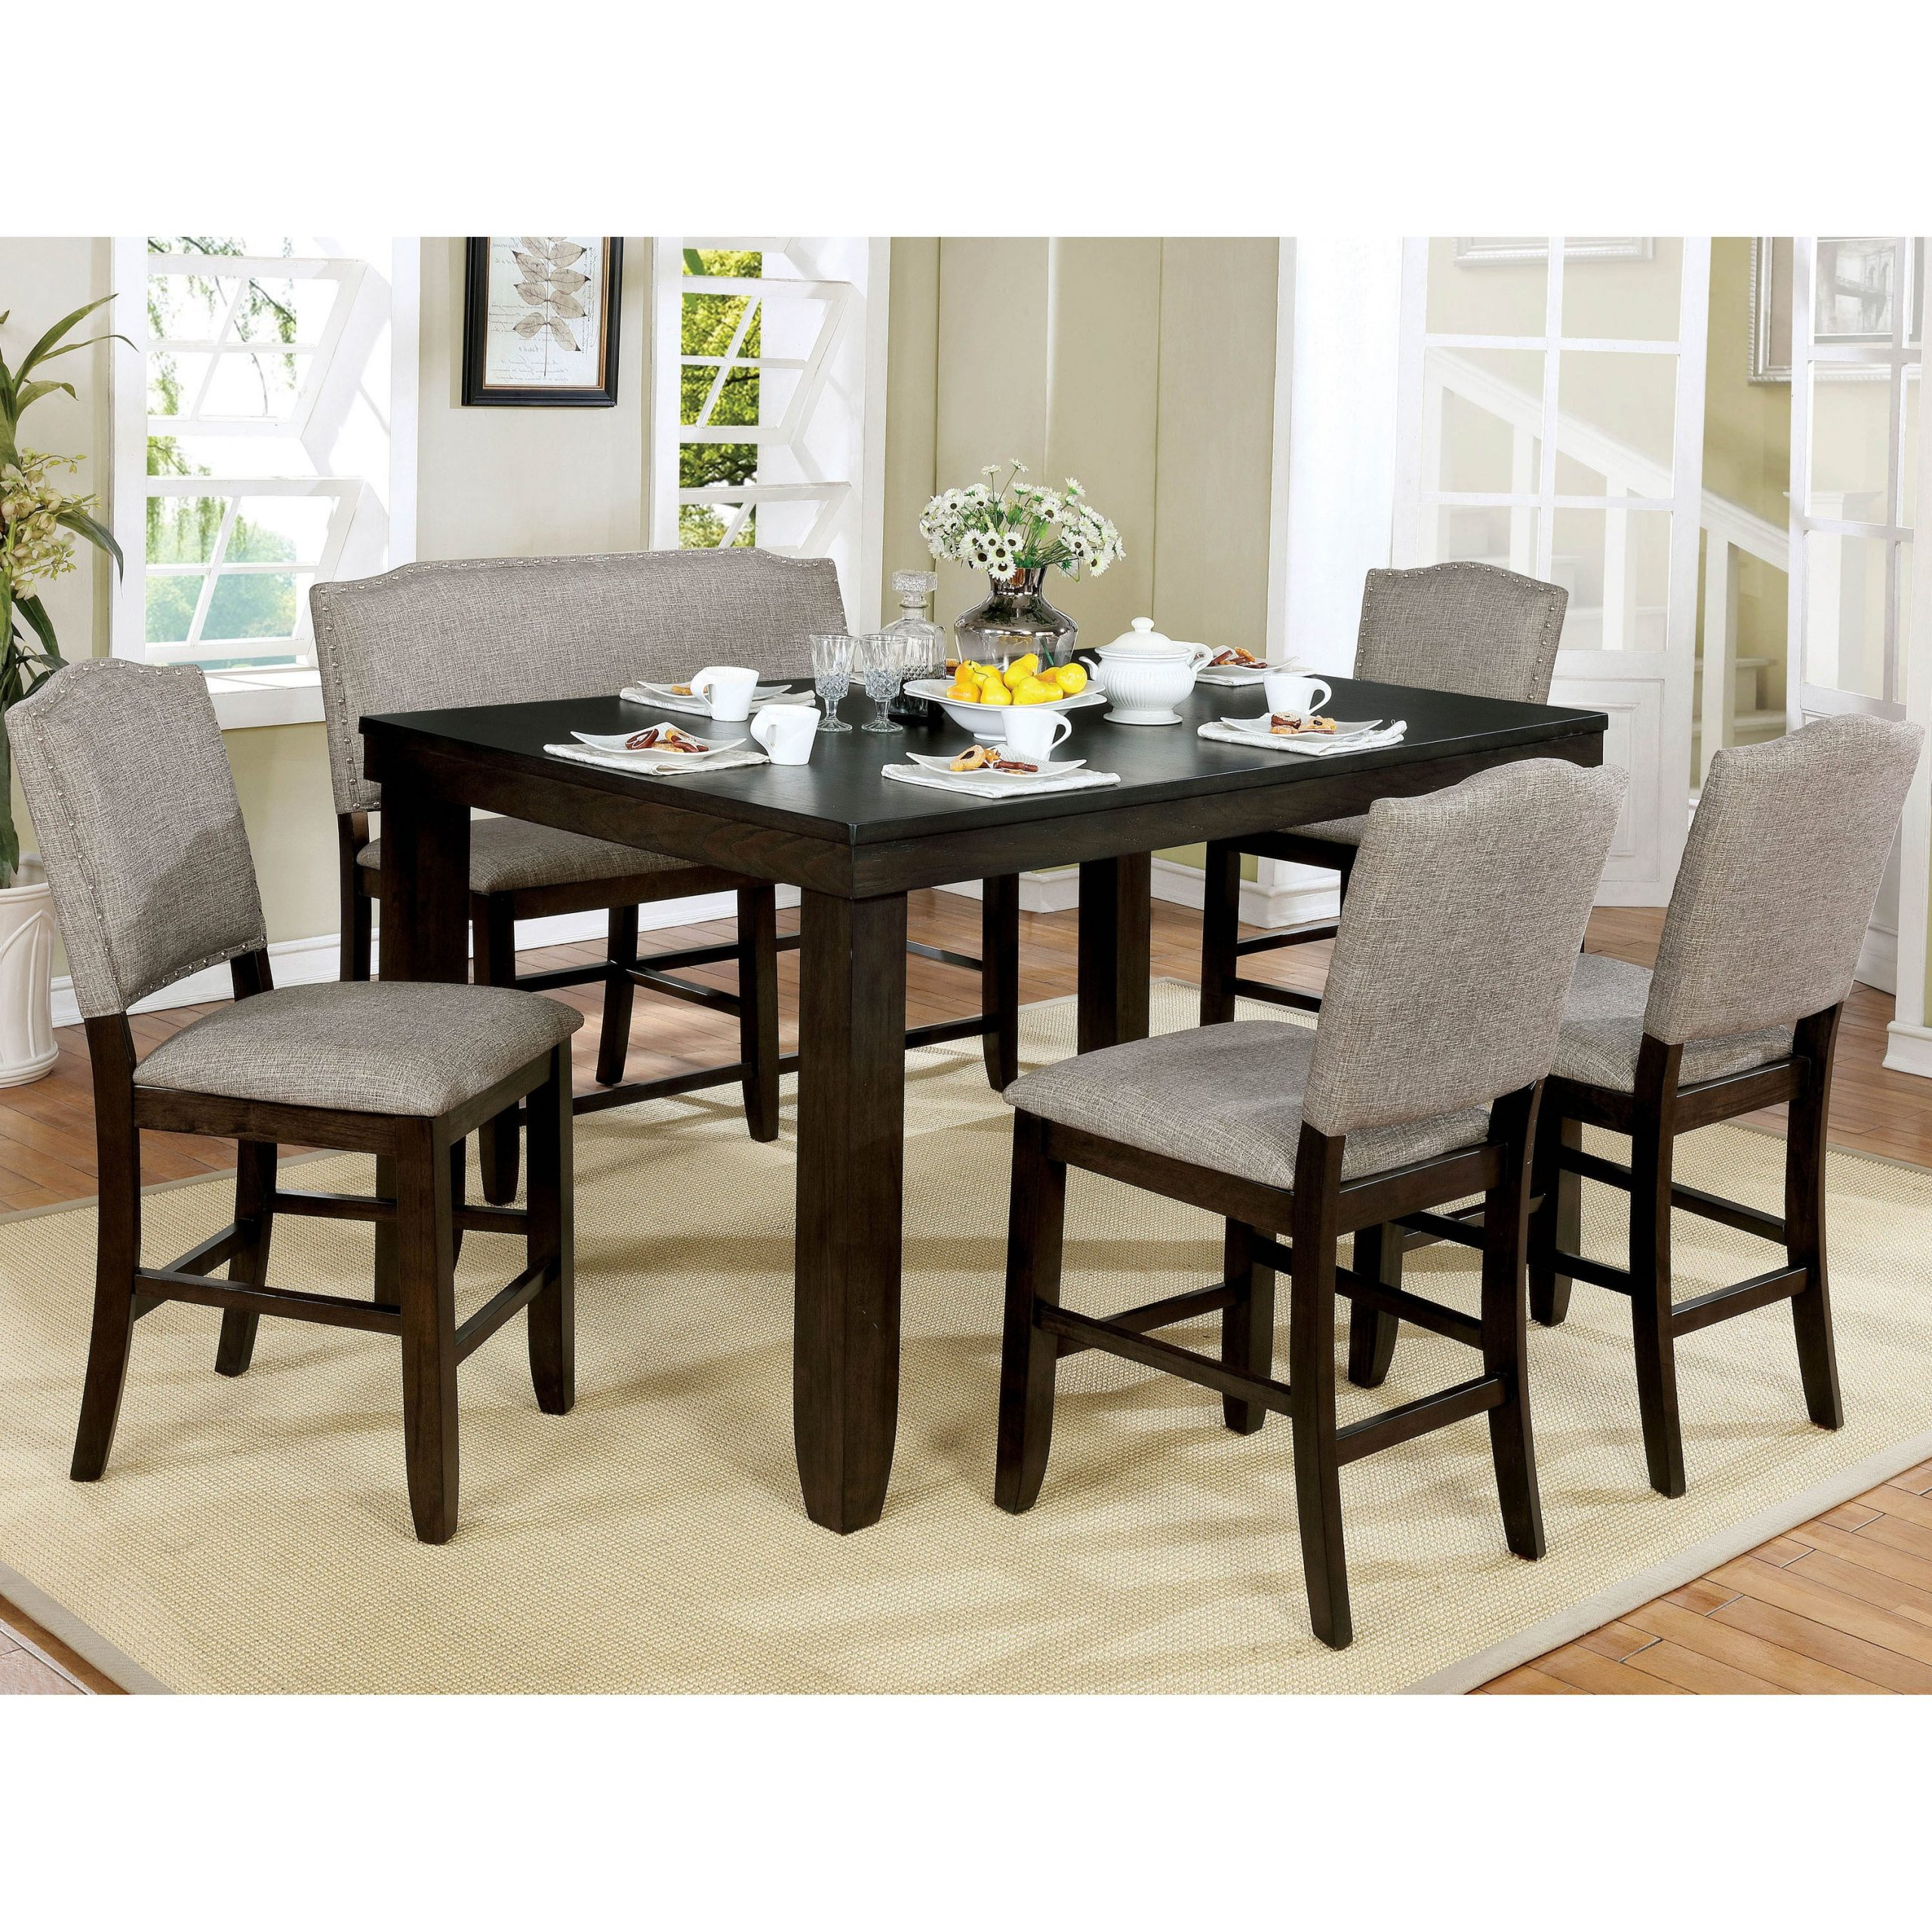 Transitional 6 Seating Casual Dining Tables In Most Recently Released Furniture Of America Davenport Walnut 6 Piece Counter Dining Set (View 17 of 25)